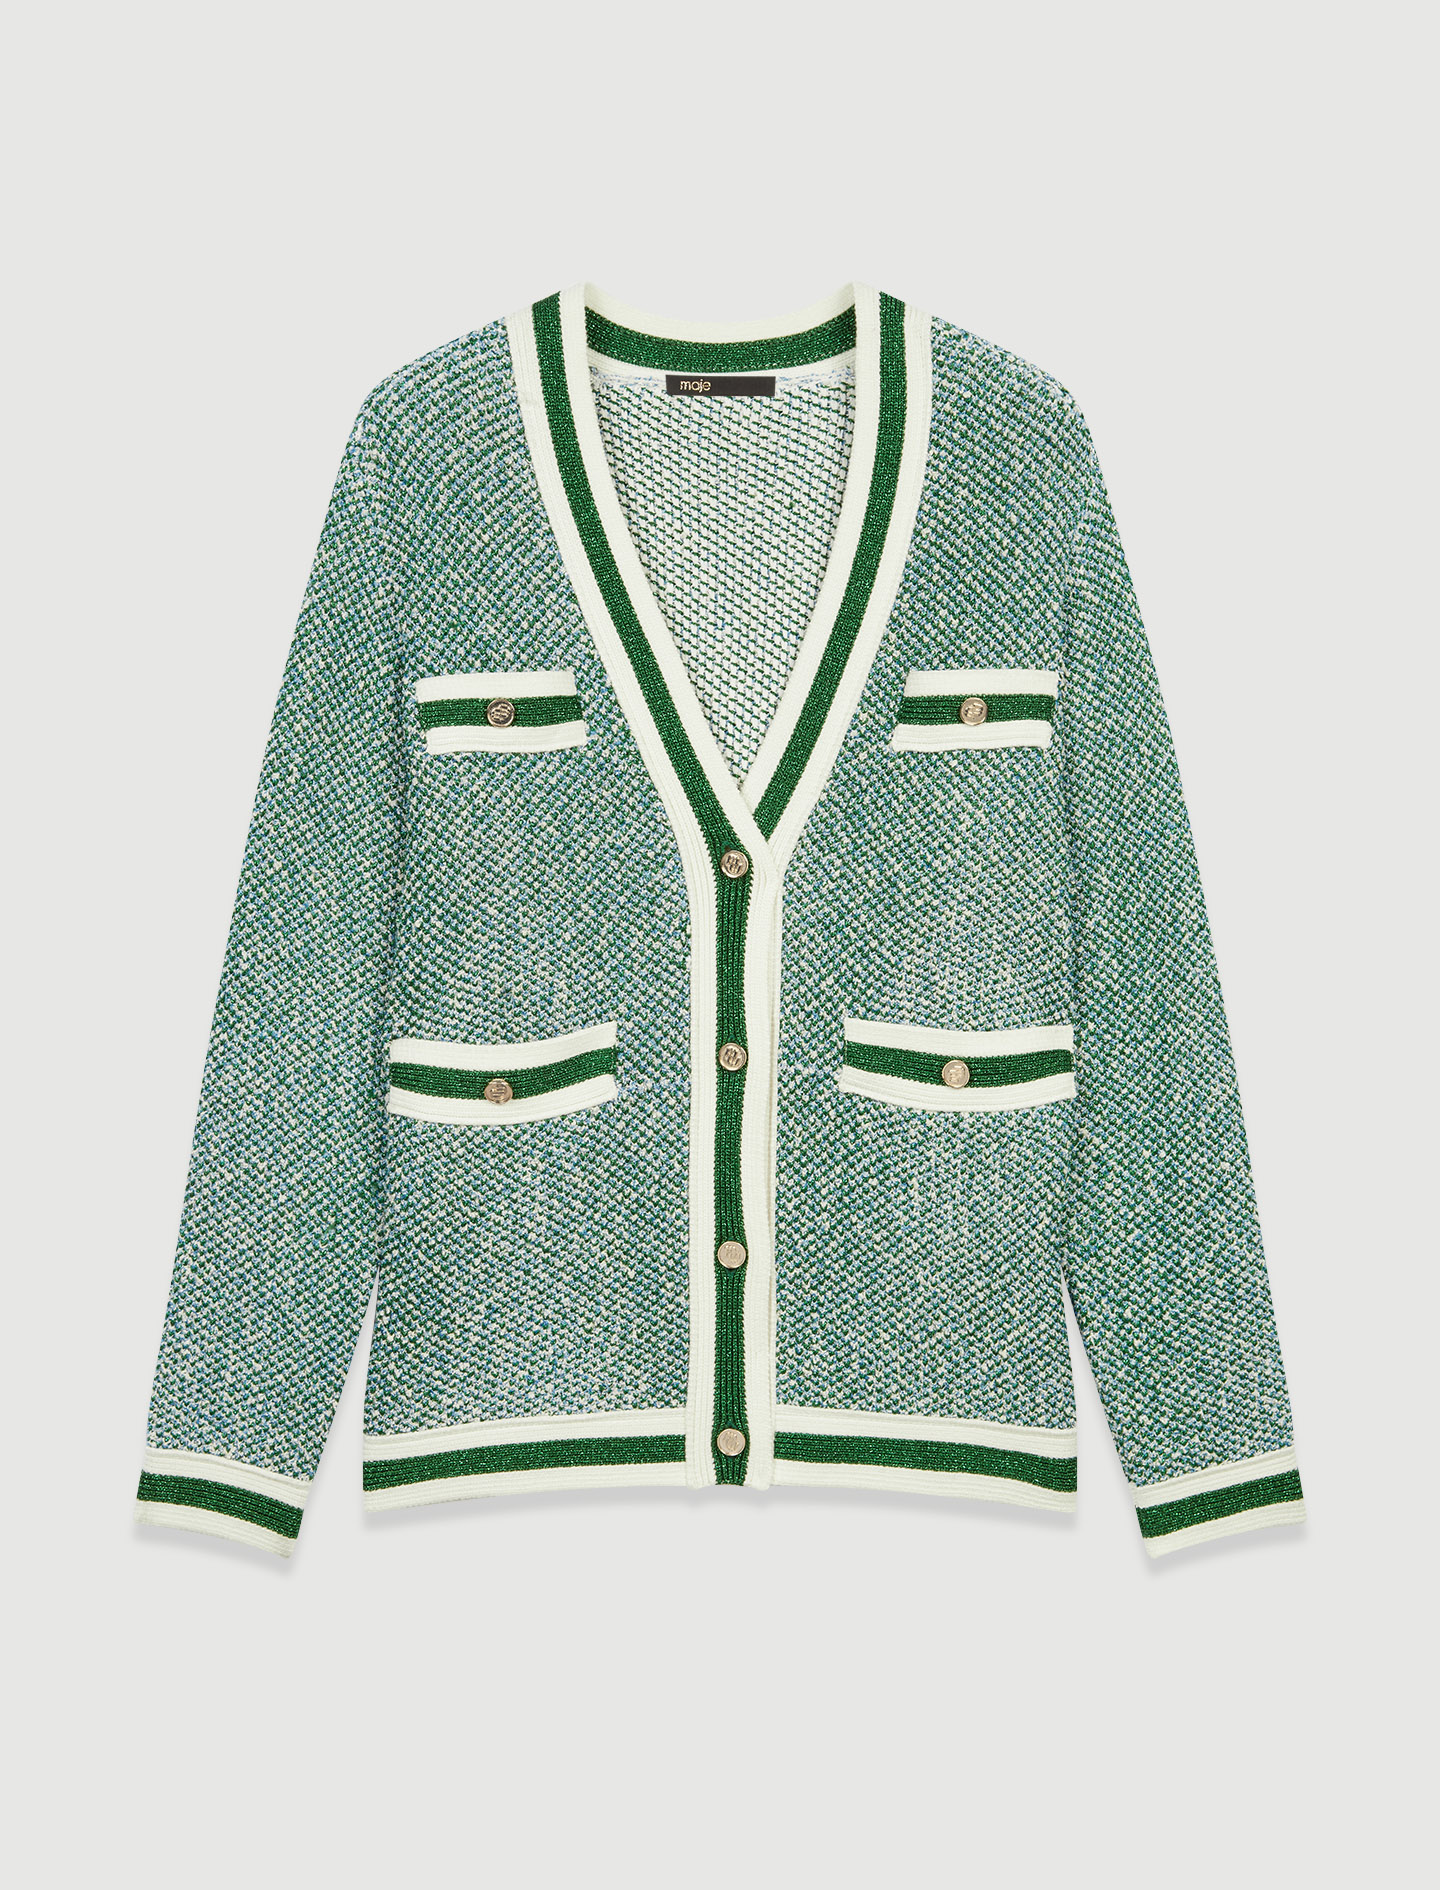 Fancy green knit cardigan - Multiclr